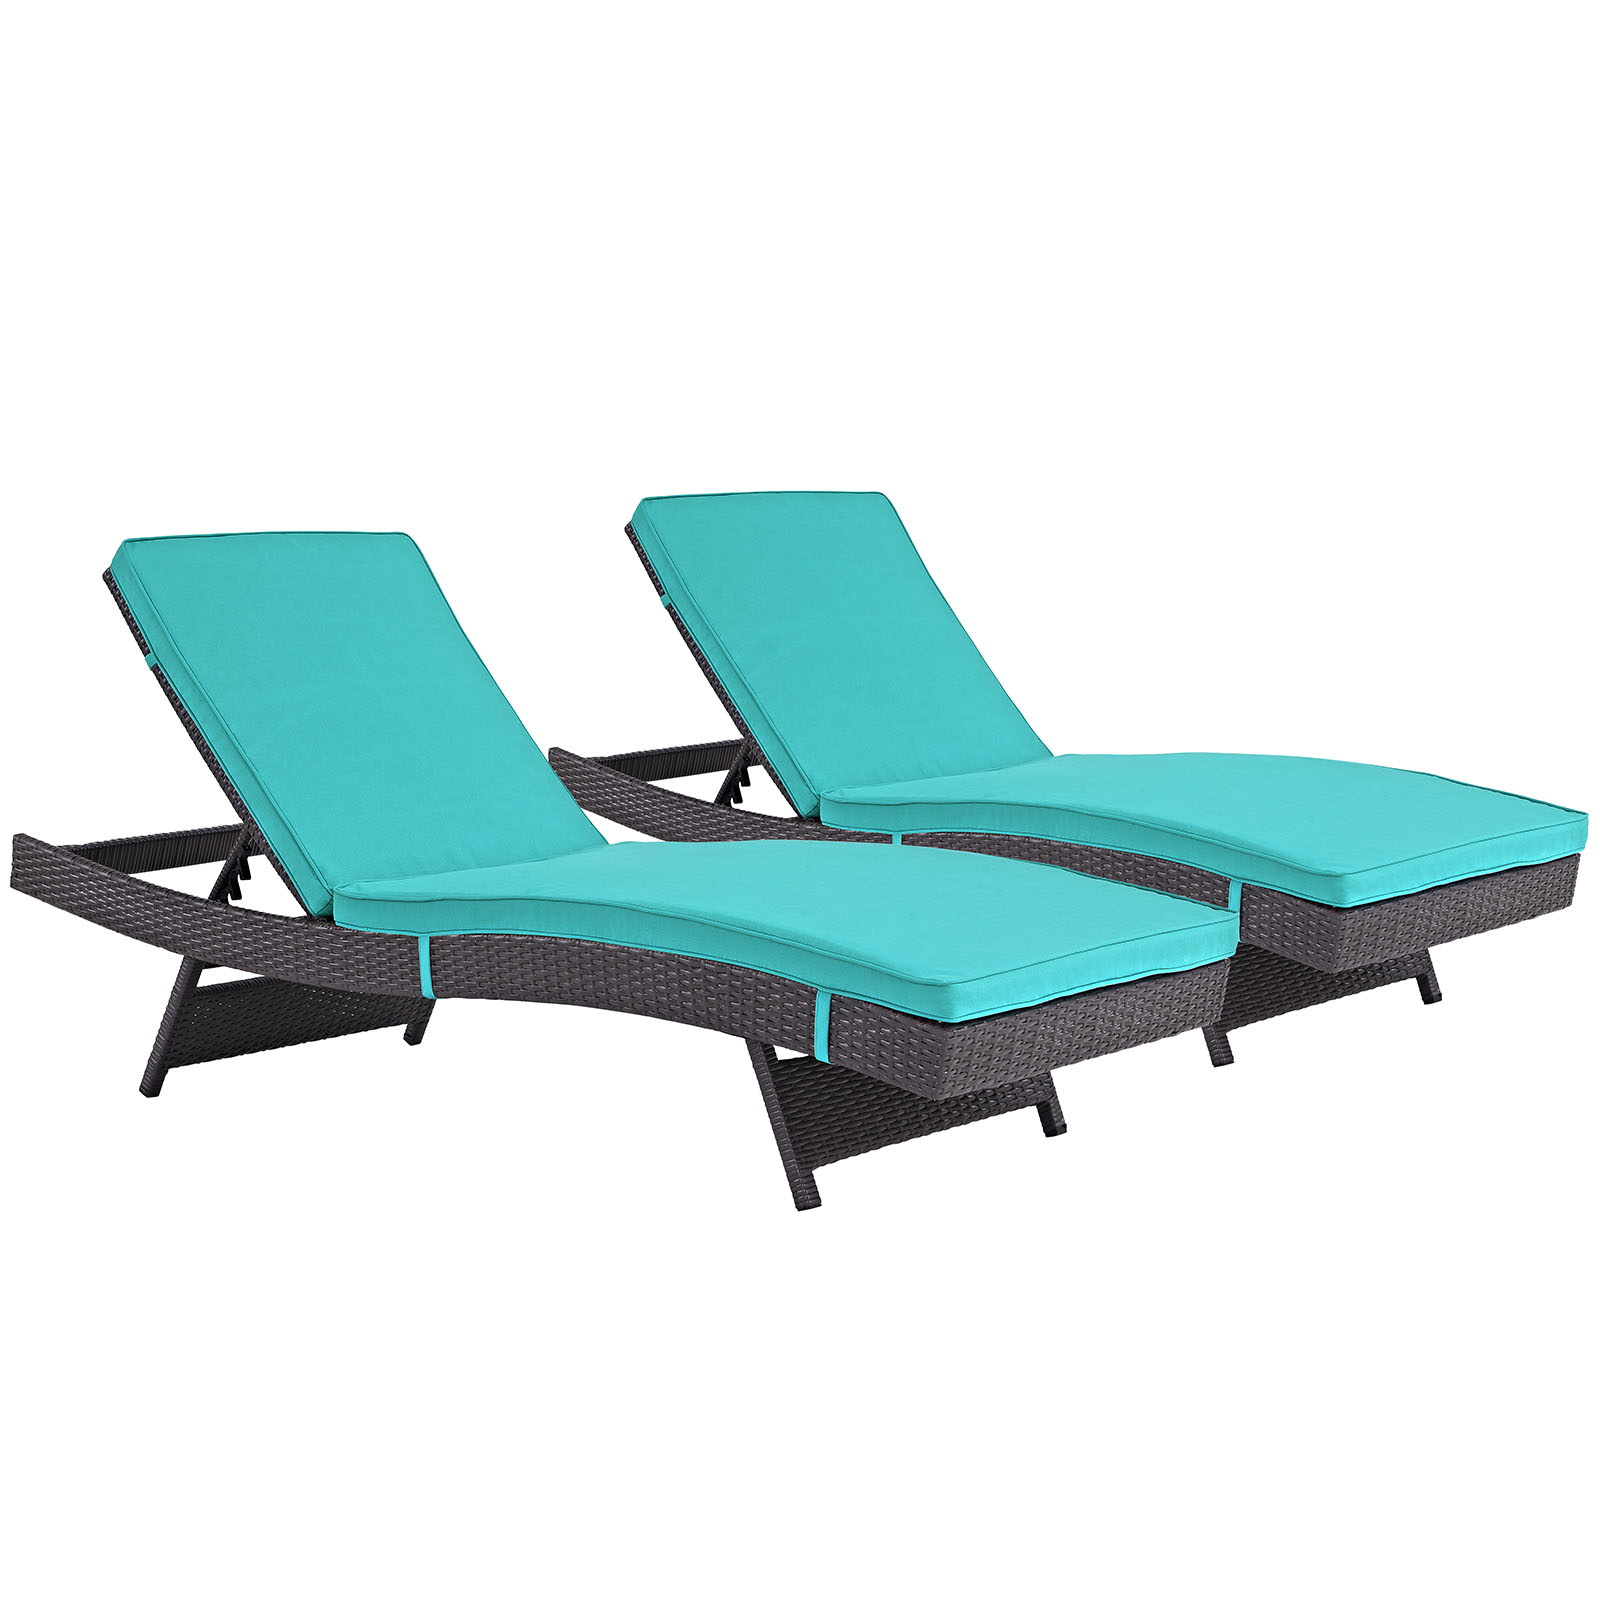 Modern Contemporary Urban Design Outdoor Patio Balcony Chaise Lounge Chair ( Set of 2), Blue, Rattan